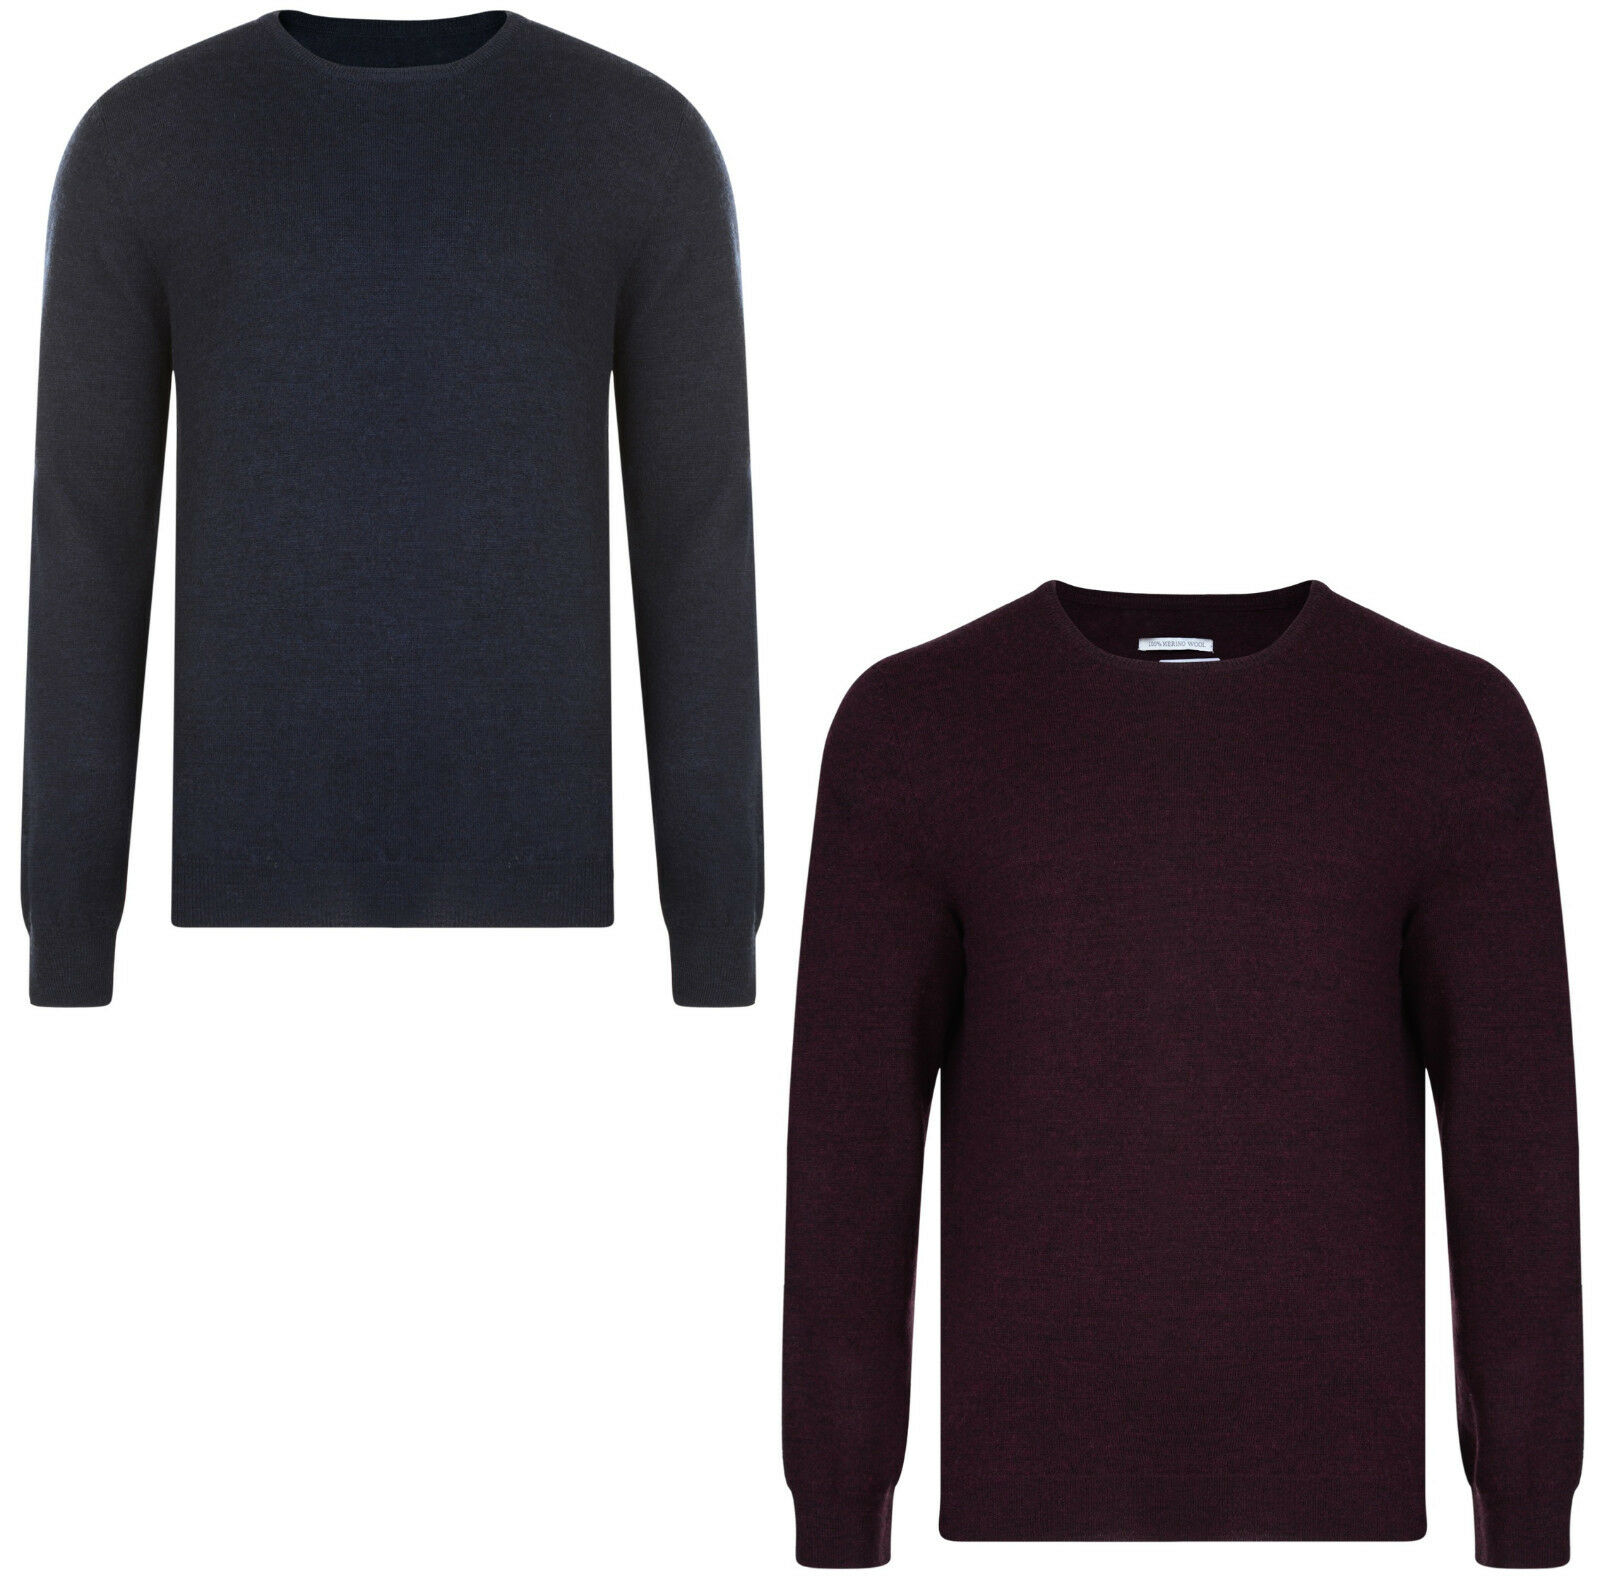 Men's Sweaters and knitwear Give your cold-weather closet an upgrade with this extensive edit of knitwear. From cozy cardigans and turtlenecks to crew-neck, V-neck and zipped sweaters, you'll find a style to suit in this selection.